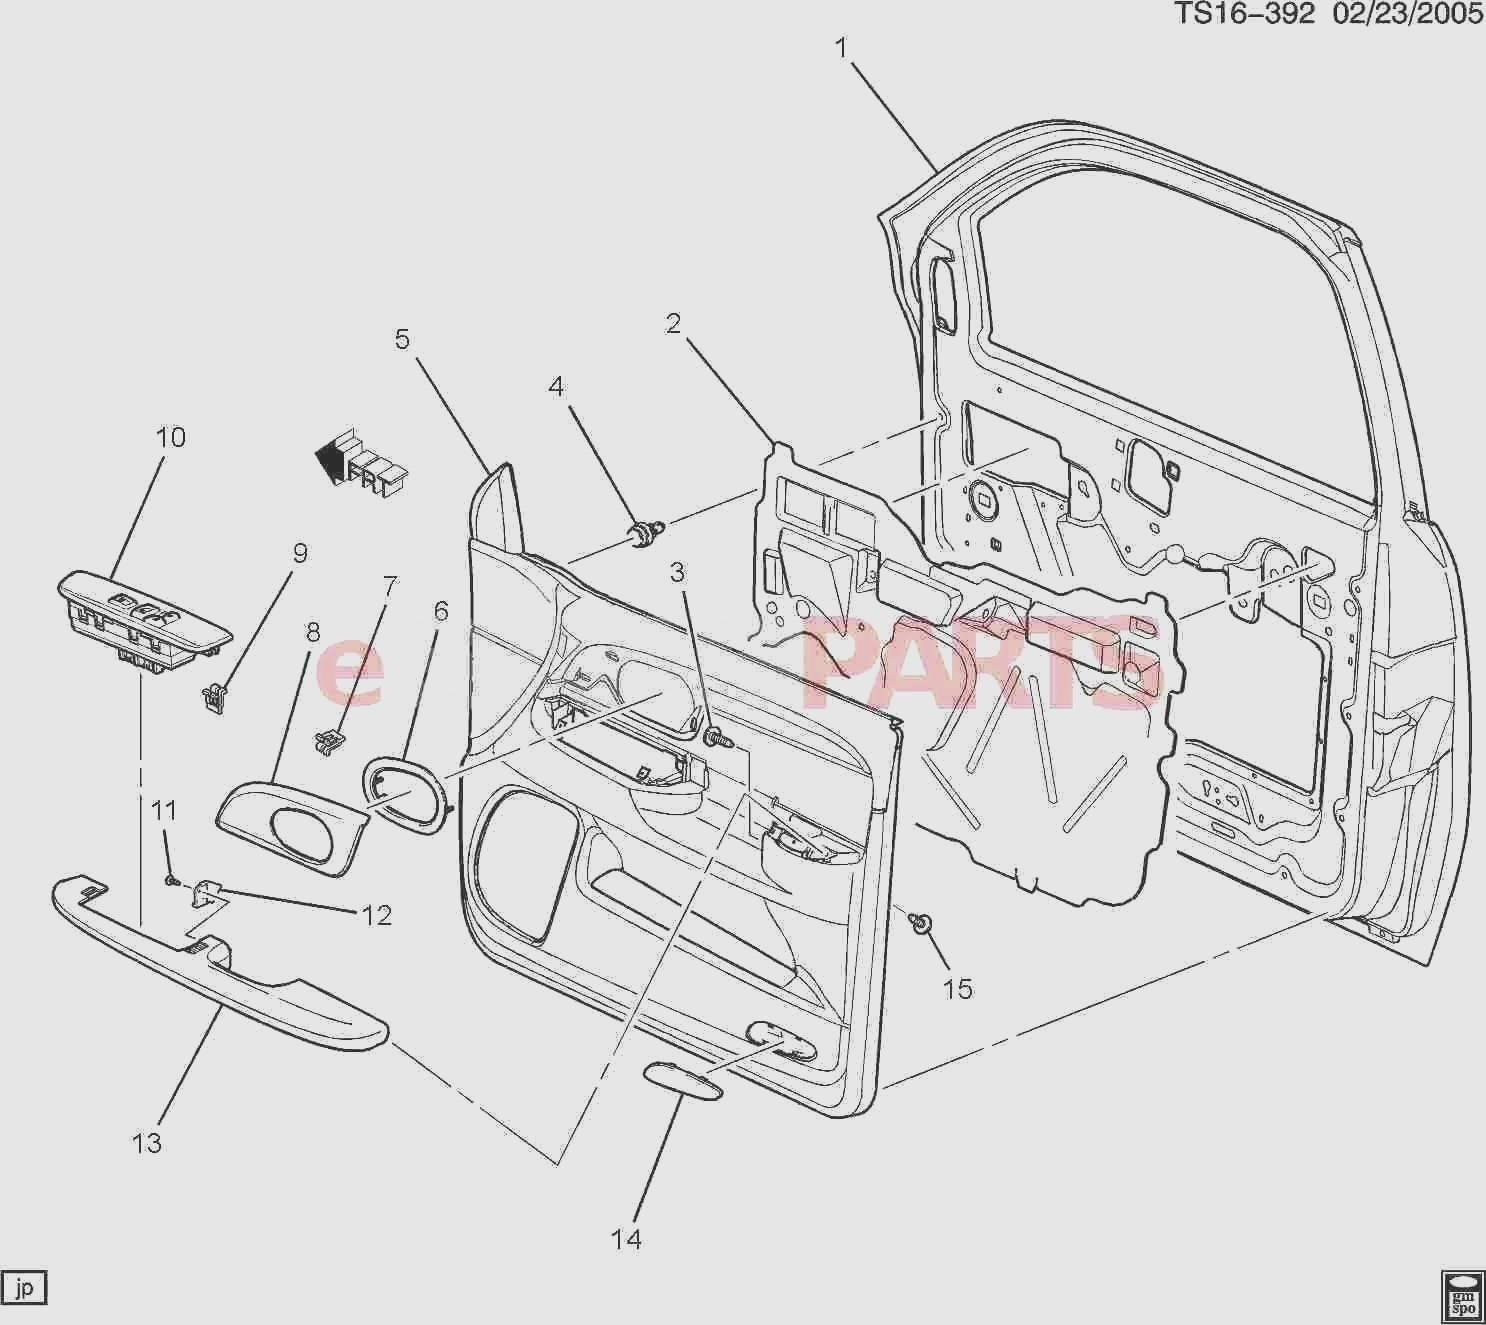 Parts Of A Car Body Diagram 6a3bd Cadillac Engine Parts Diagram Of Parts Of A Car Body Diagram Pin On Auto